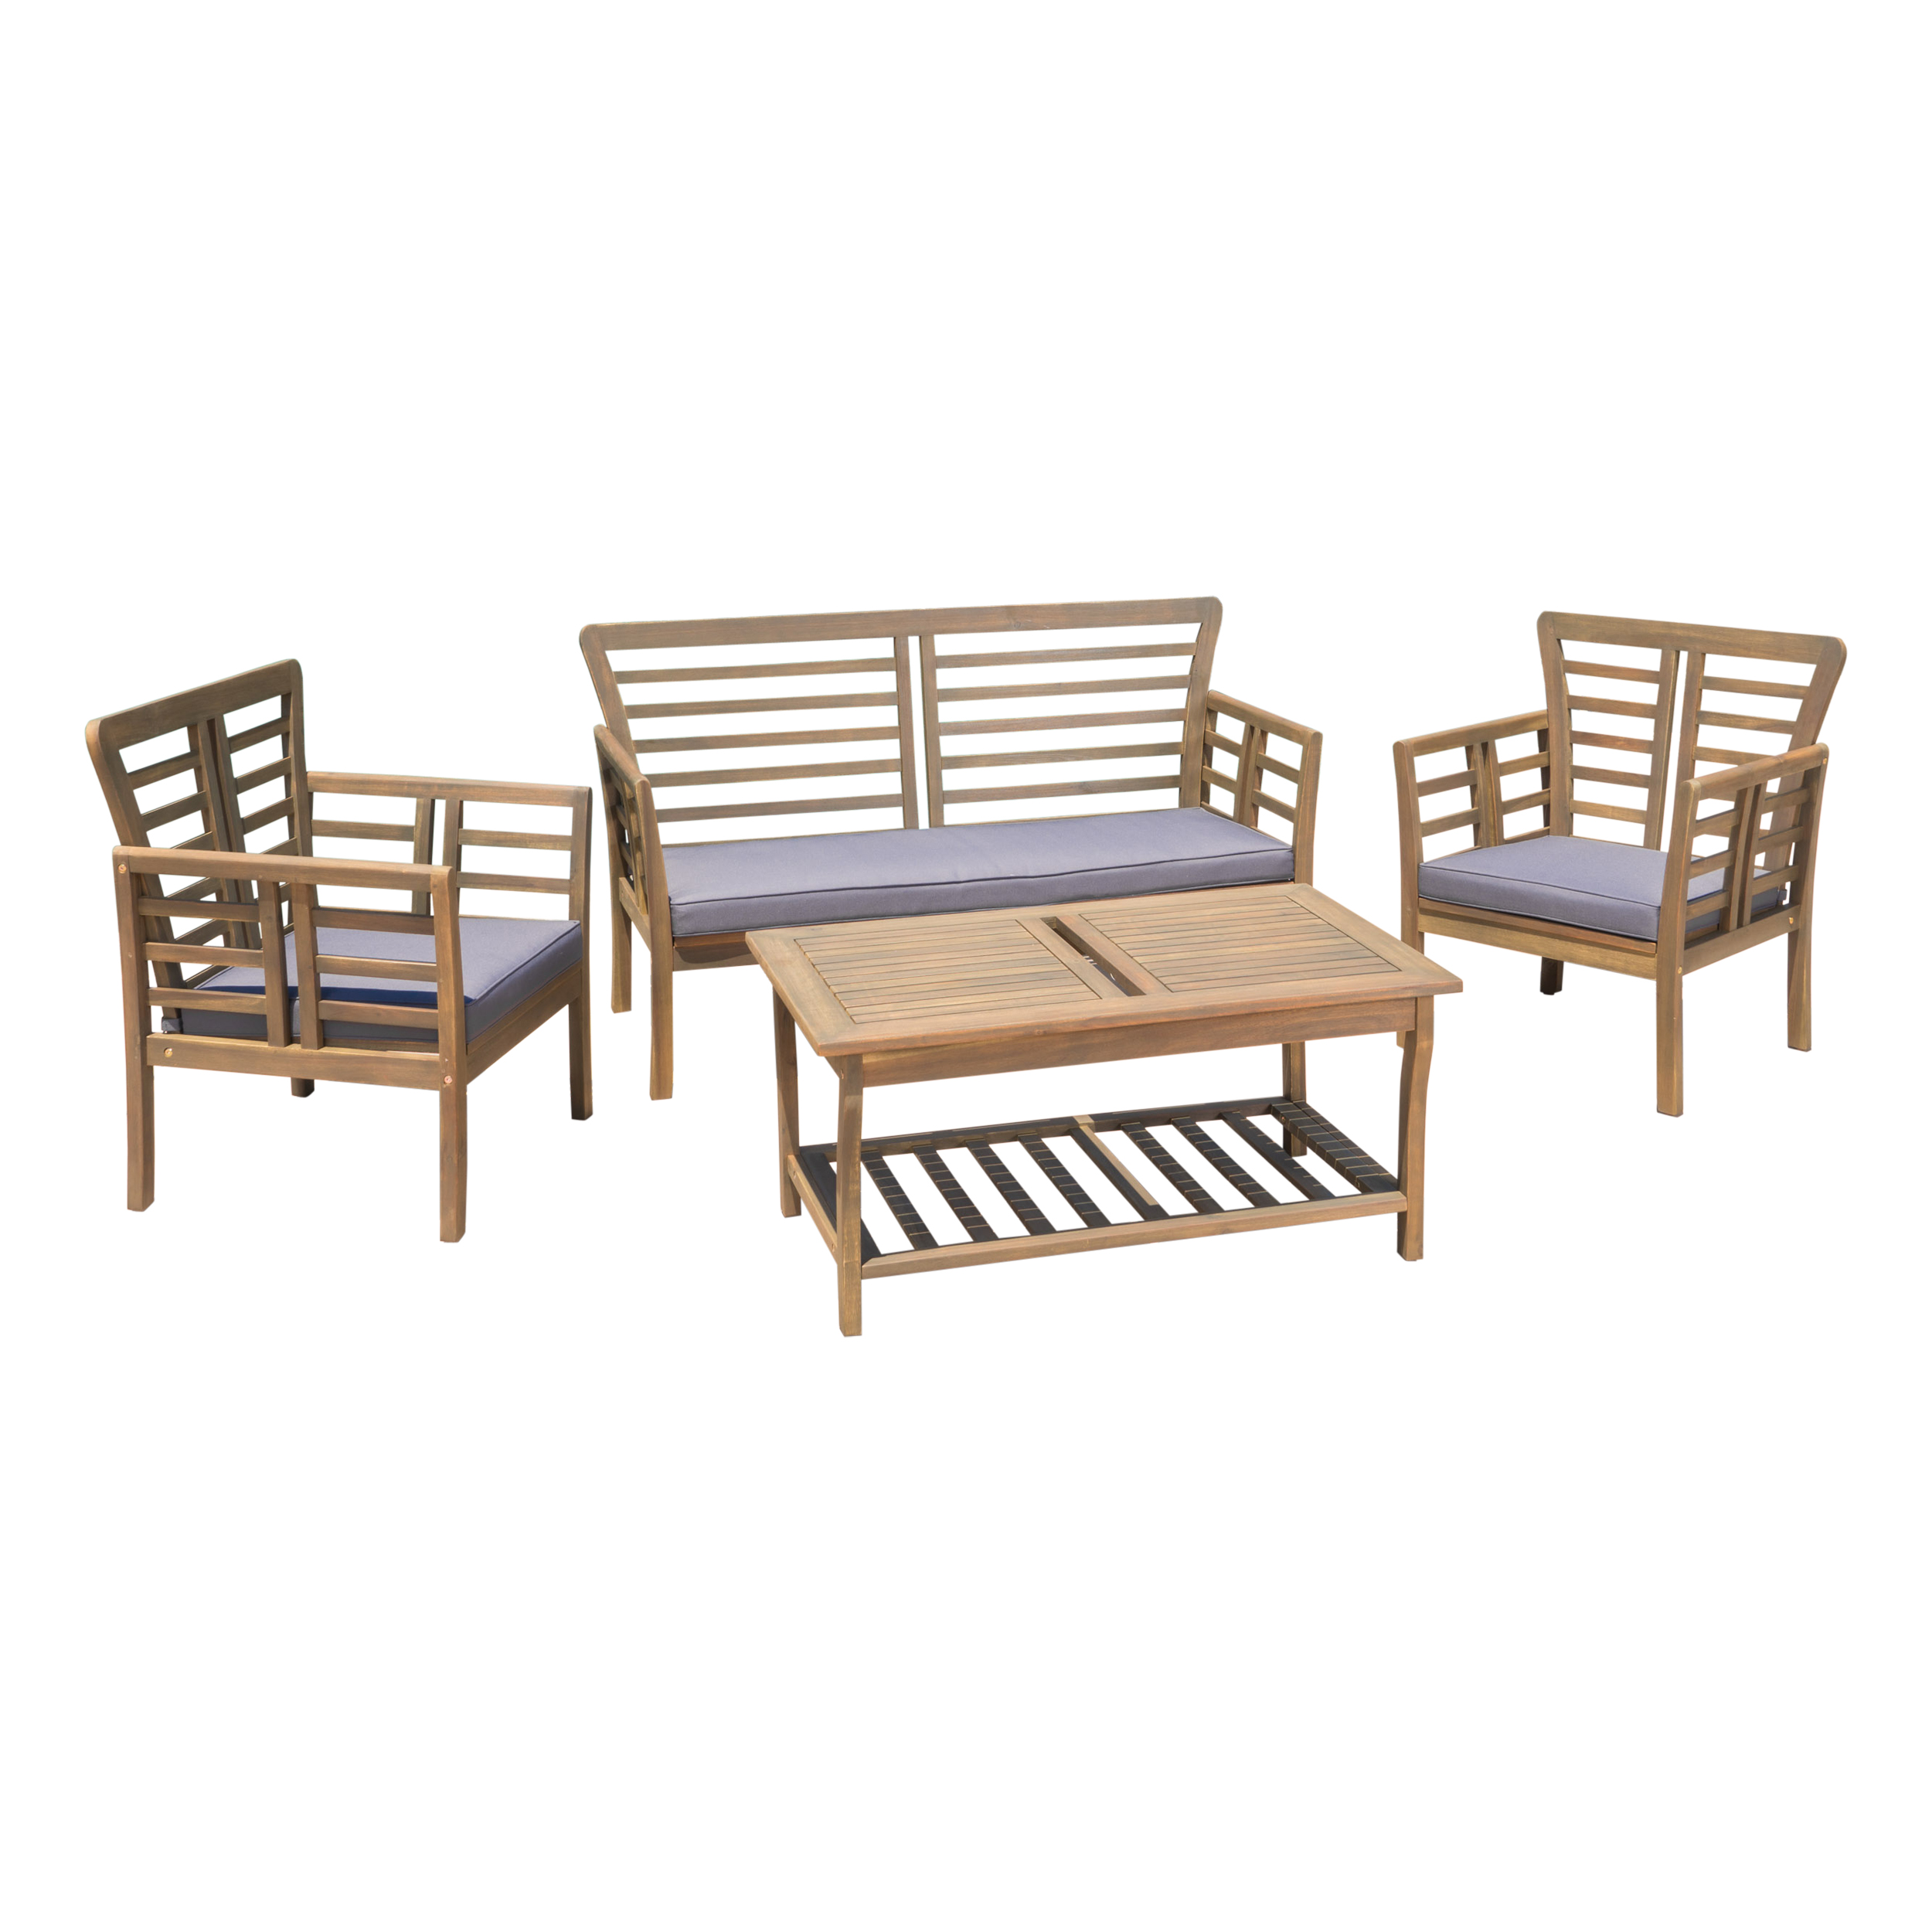 Louis 4 Piece Outdoor Acacia Wood Chat Set with Water Resistant Cushions, Dark Grey